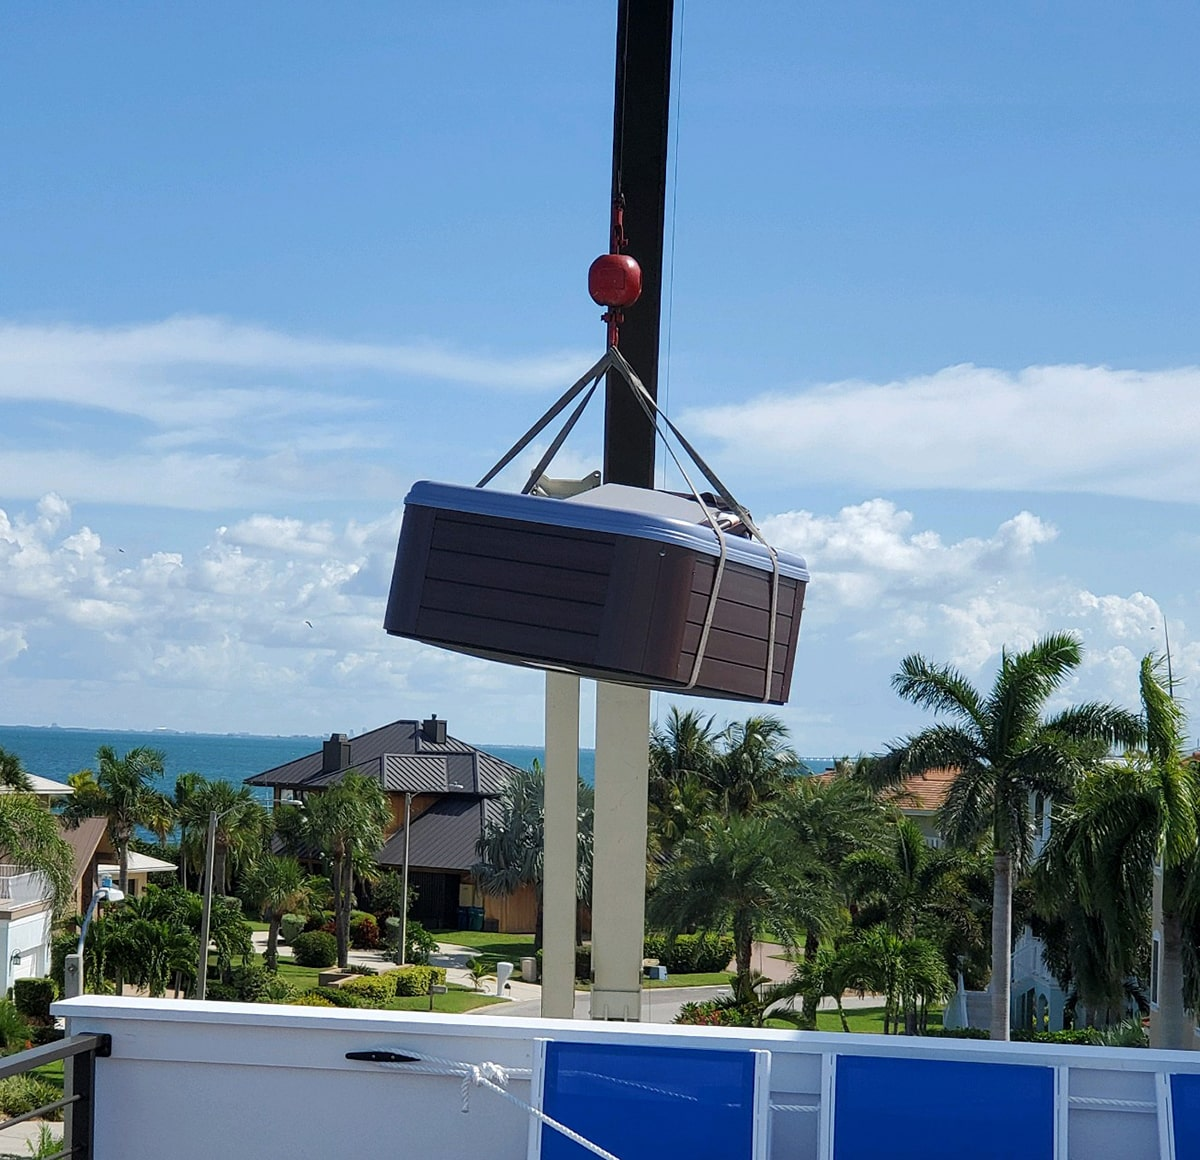 Nordic Retreat Hot Tub Crane Install in Sarasota